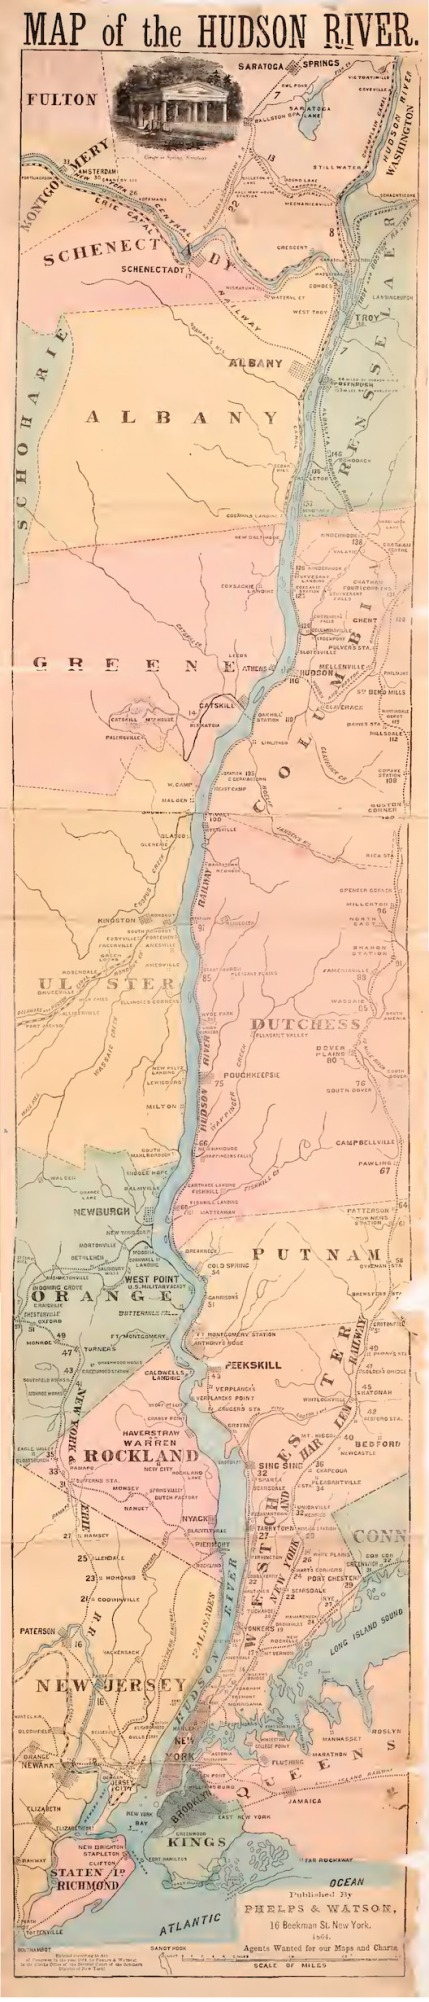 1868 strip map of the Hudson River Valley